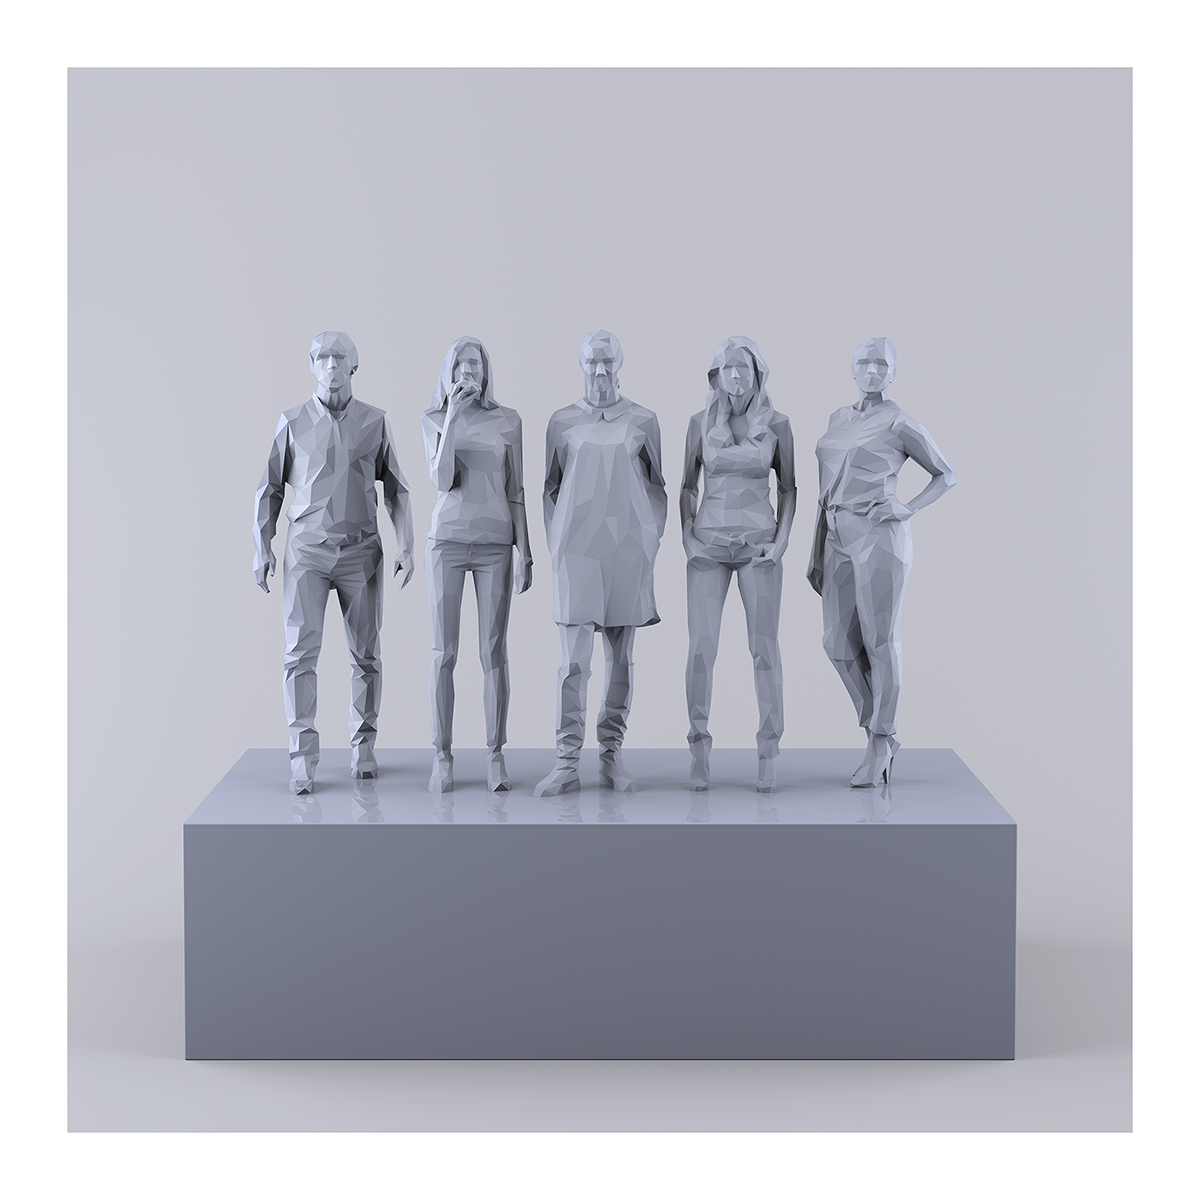 This was HomoSapiens IV 001 1 - 2019 - This was HomoSapiens. IV. (LowPoly People)